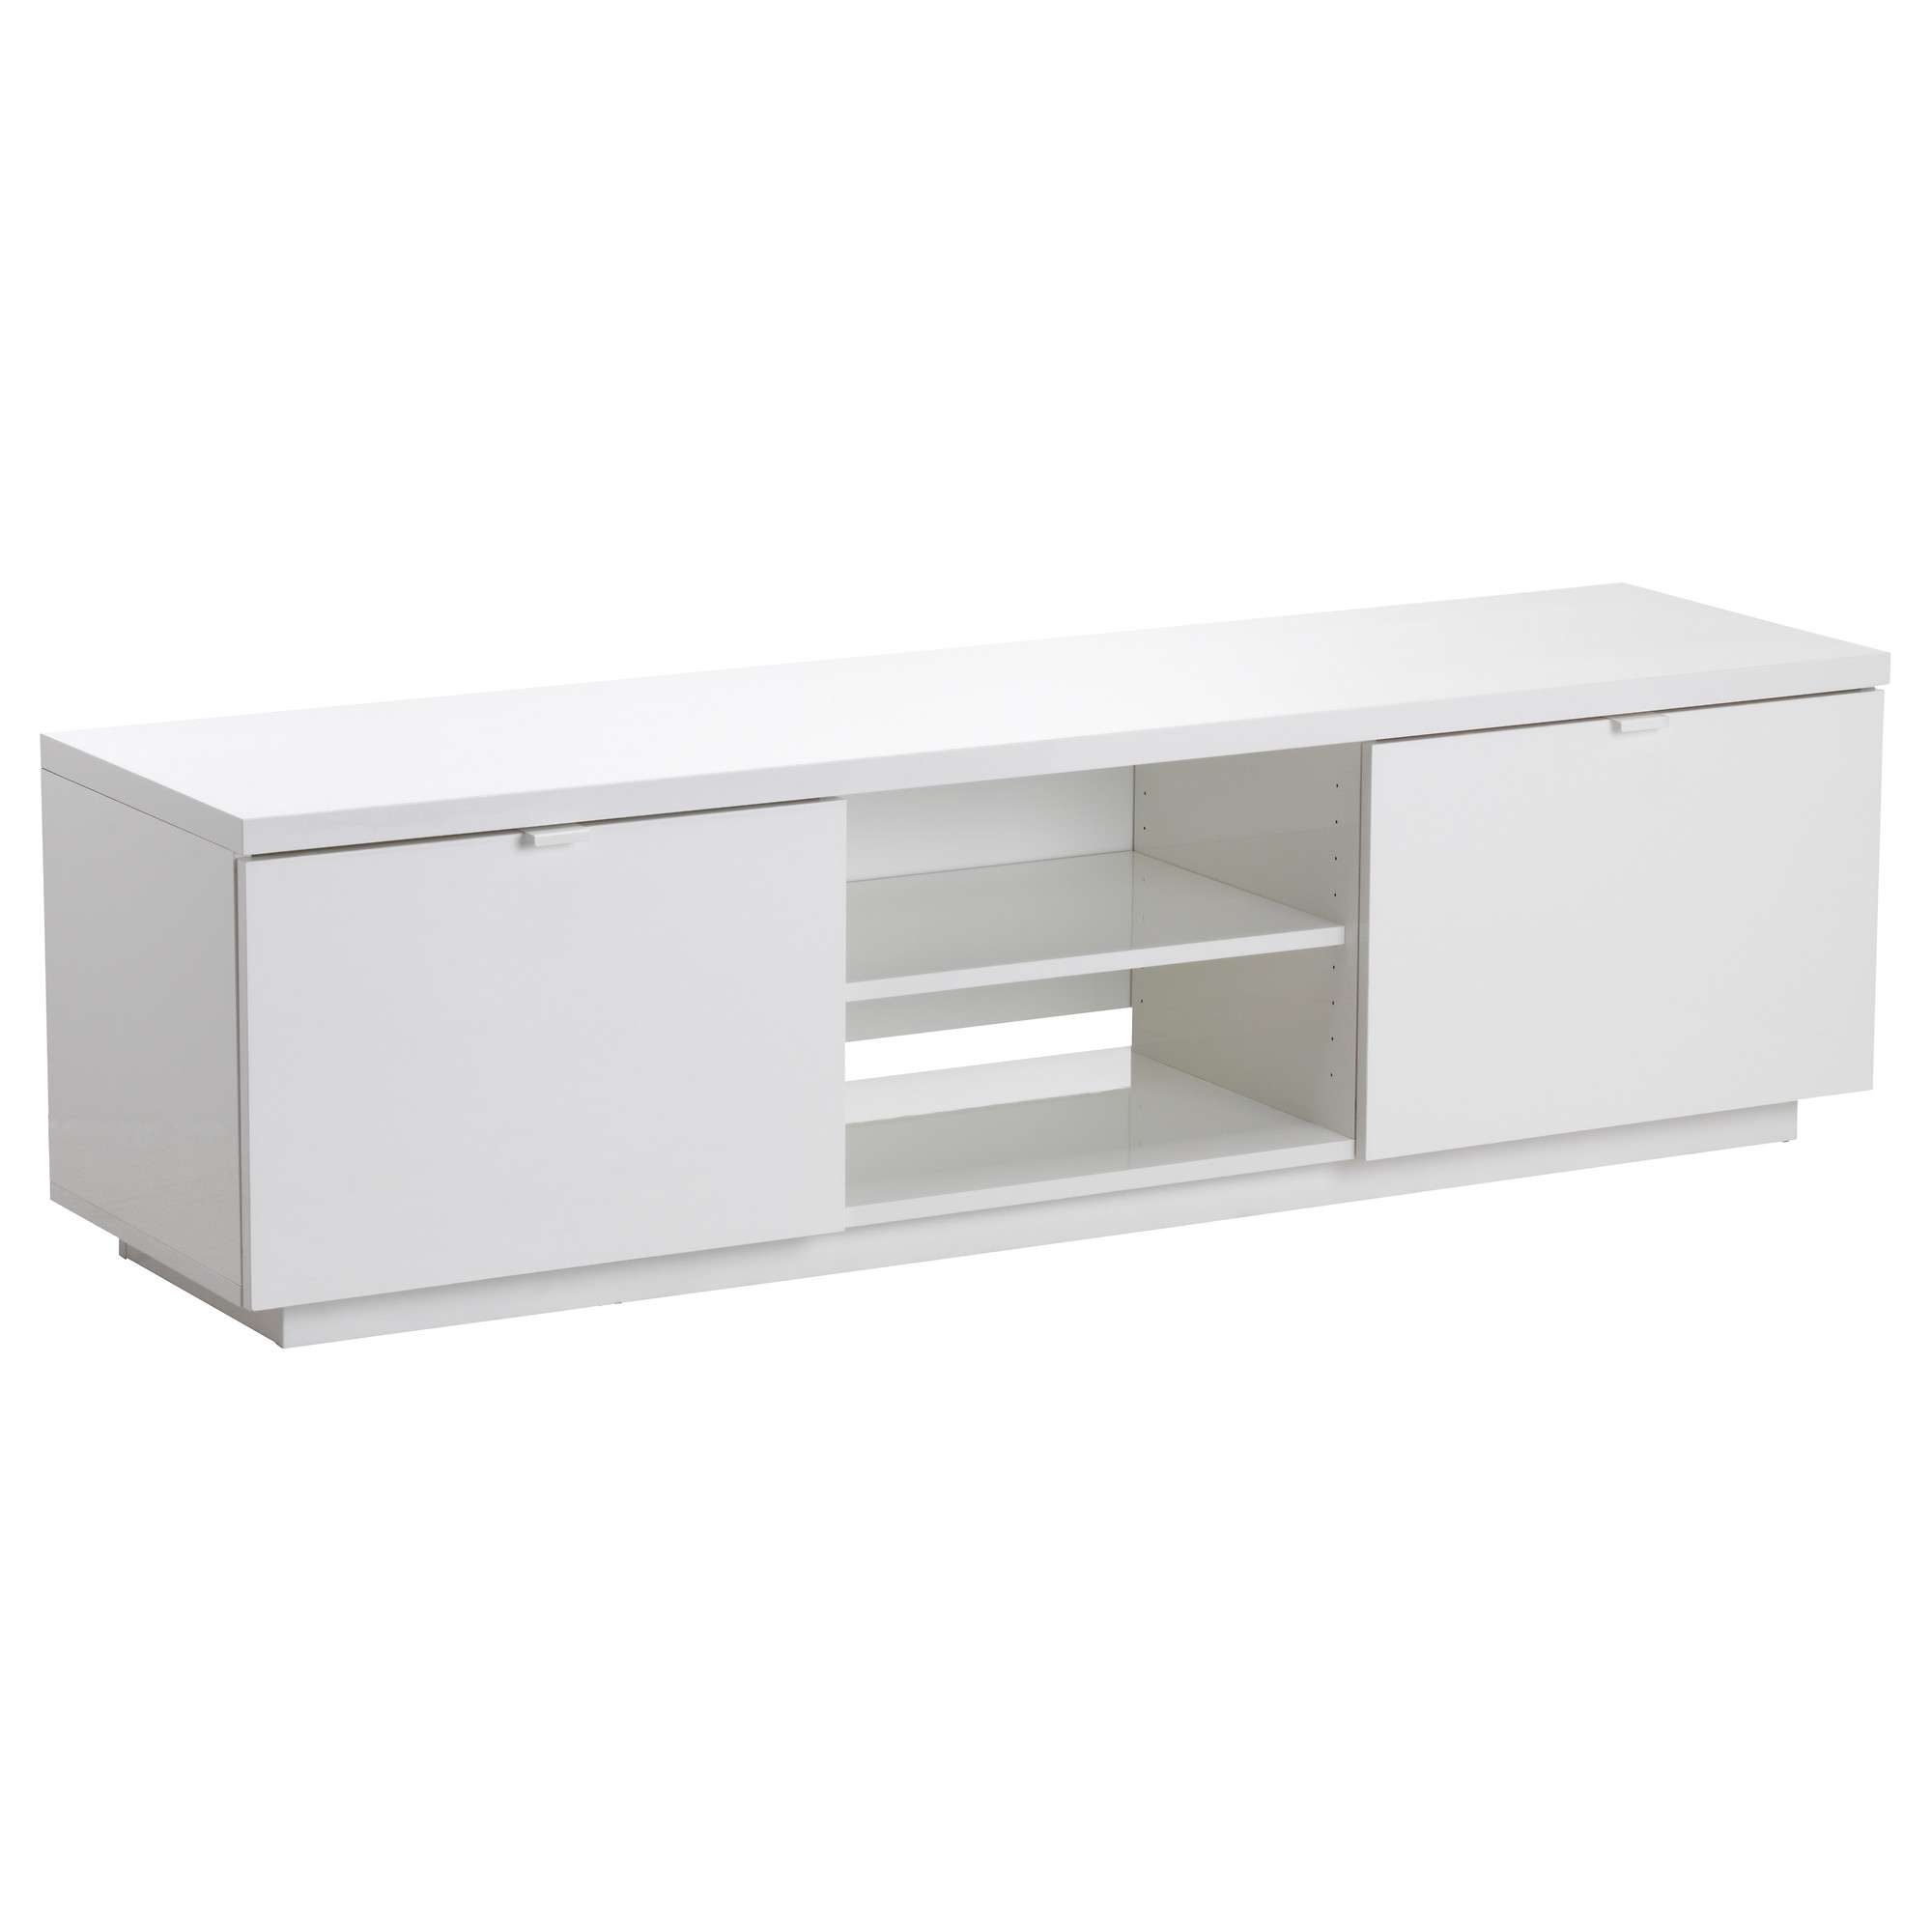 Byås Tv Bench High Gloss White 160X42X45 Cm – Ikea For Gloss White Tv Stands (View 3 of 15)